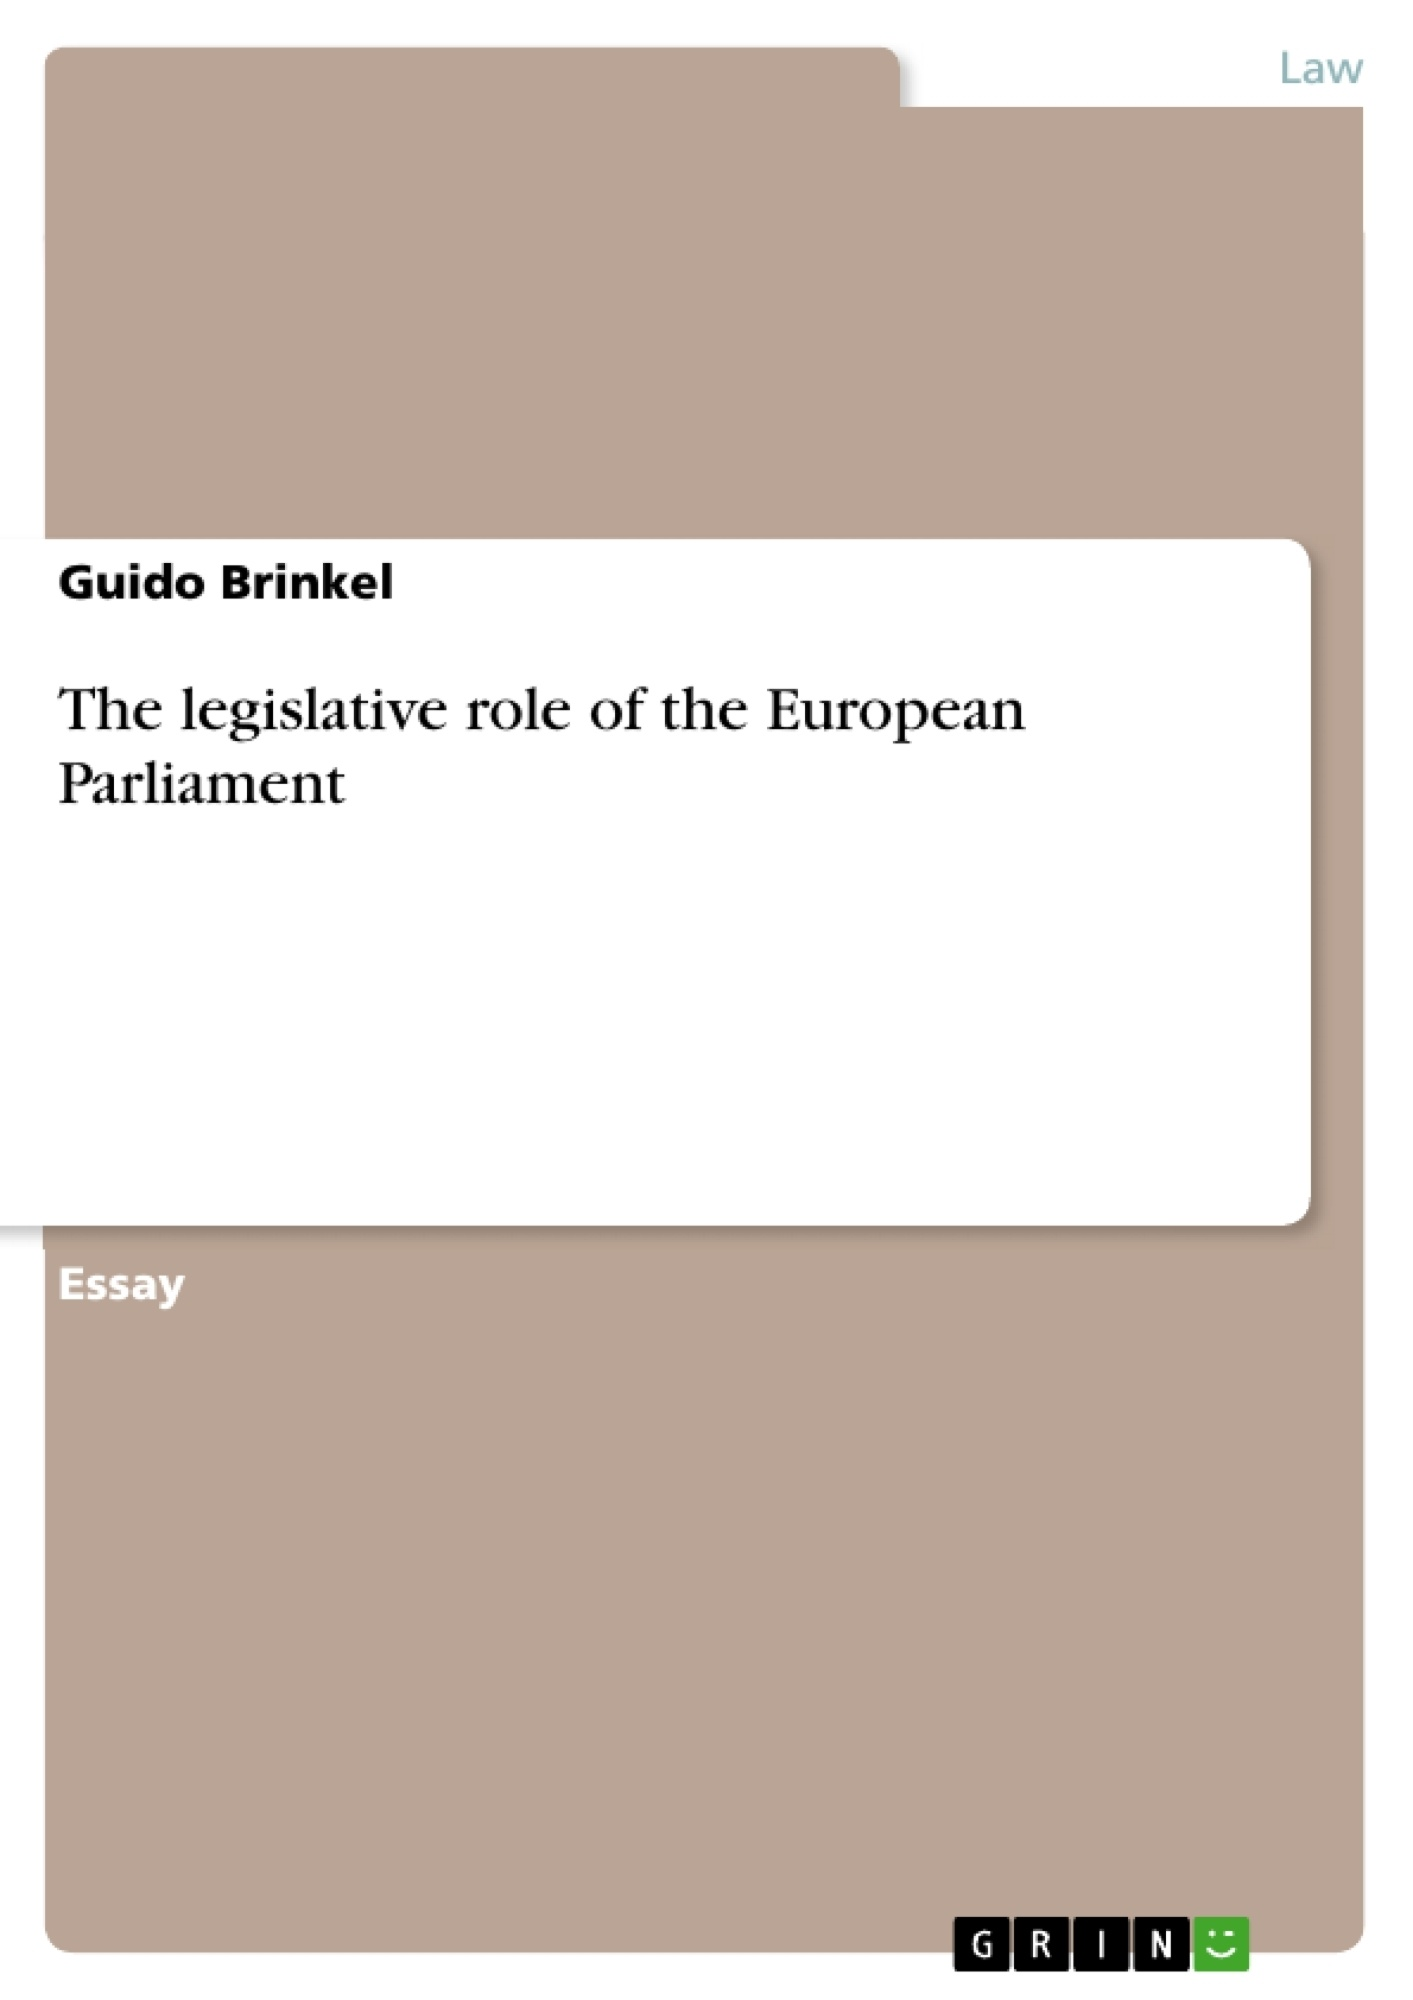 Title: The legislative role of the European Parliament